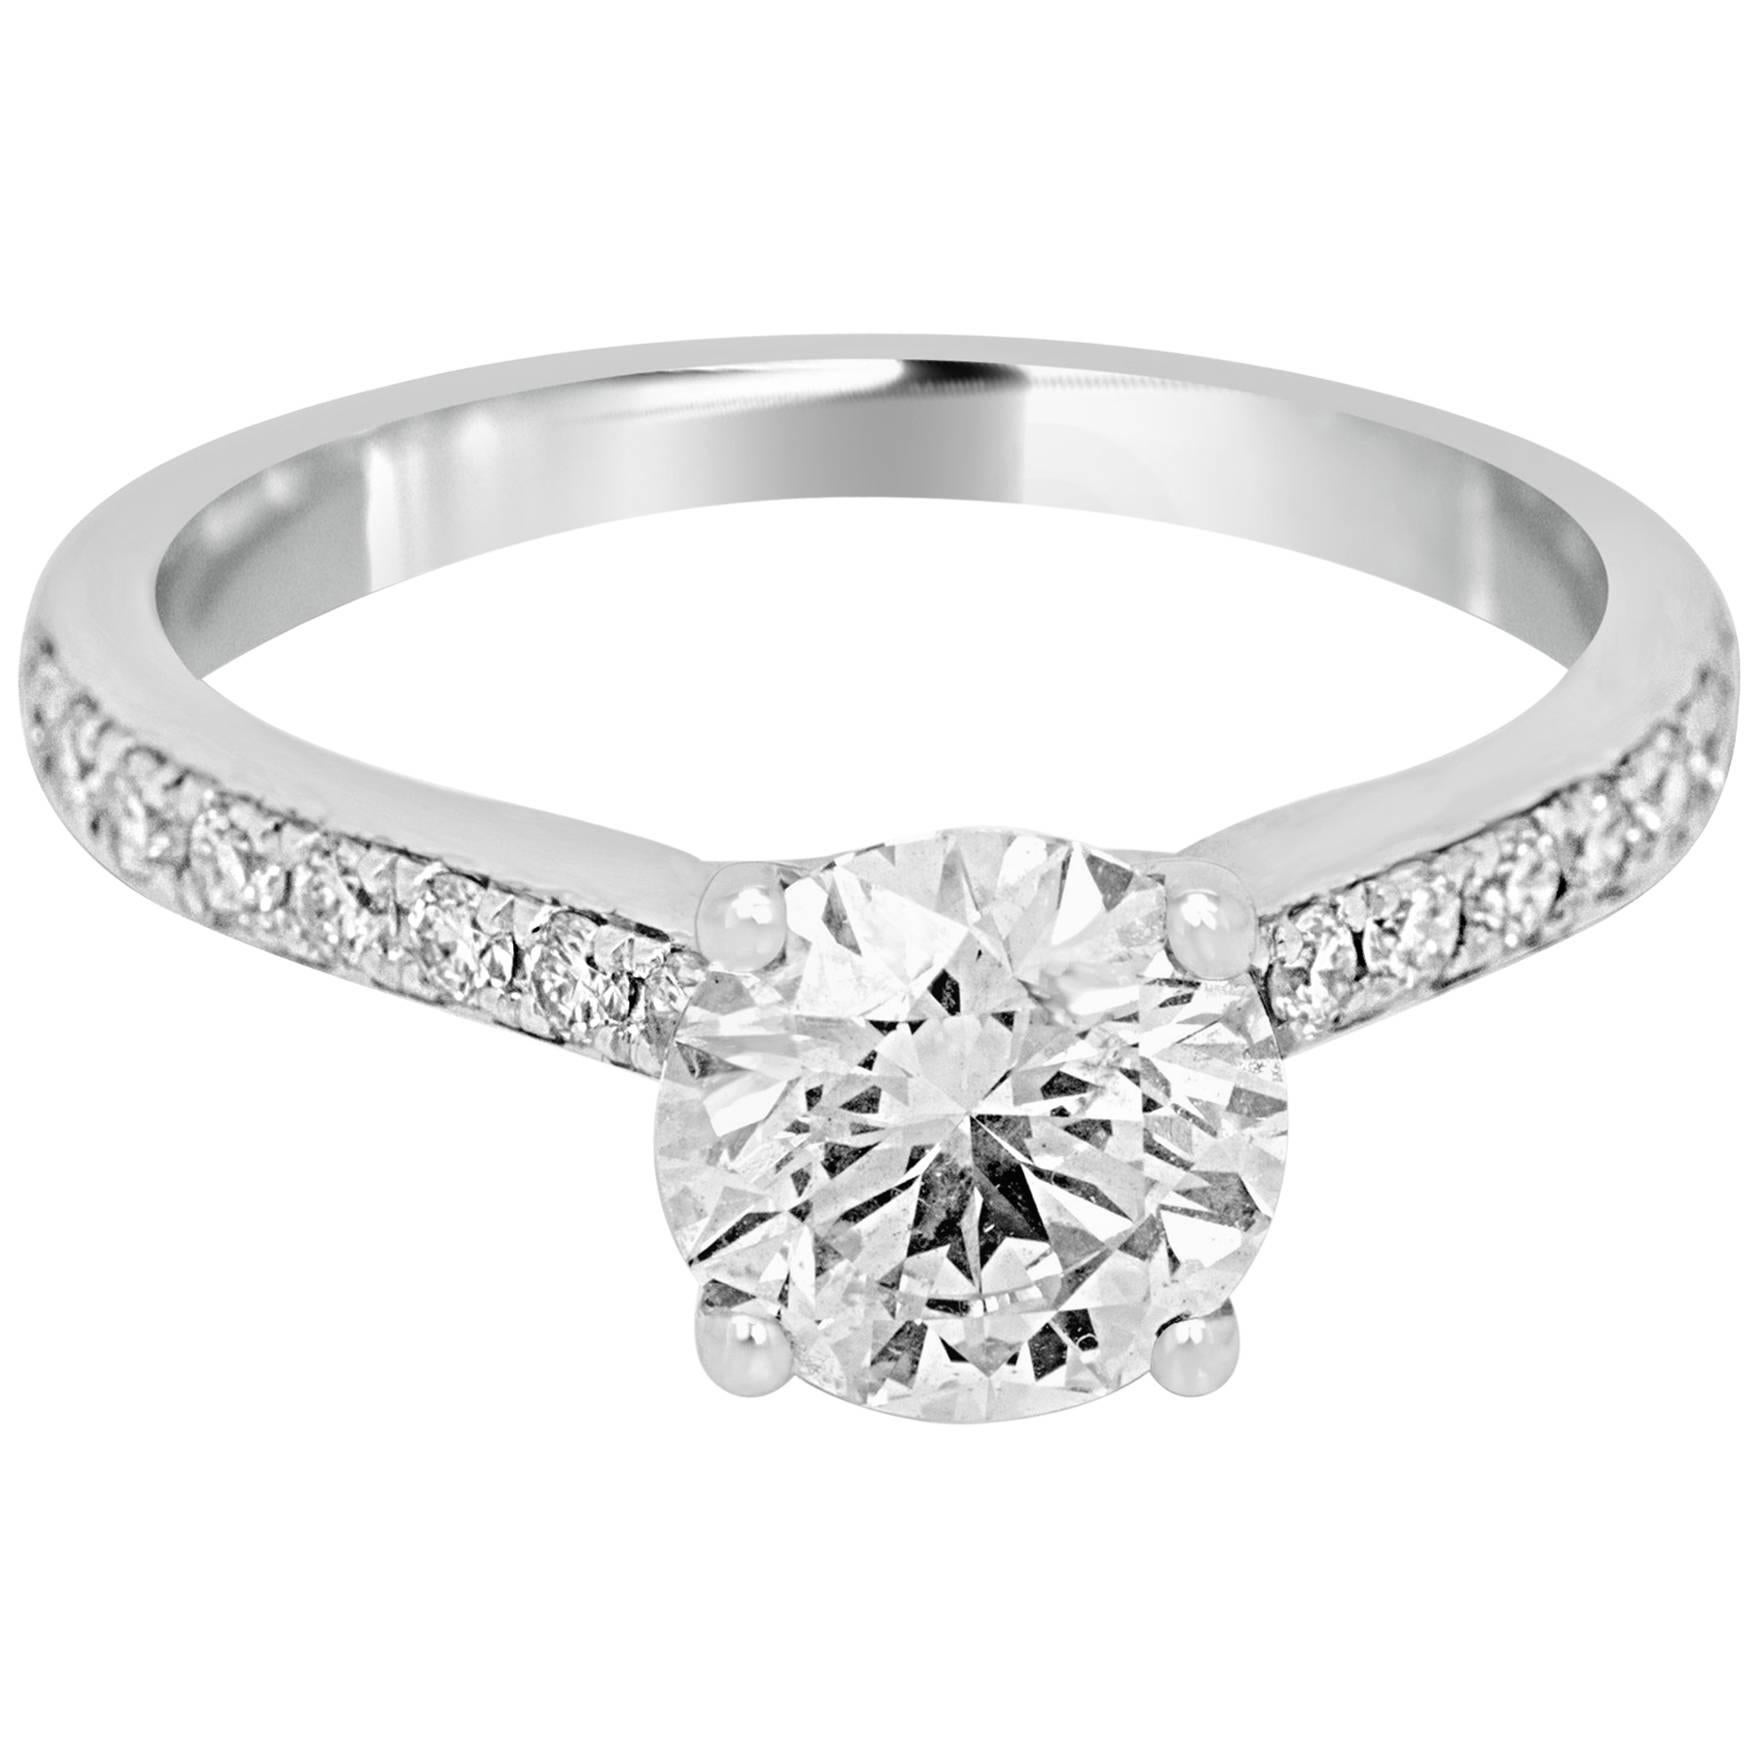 mark engagement rings patterson new diamond product markpatterson ring arrivals platinum oval